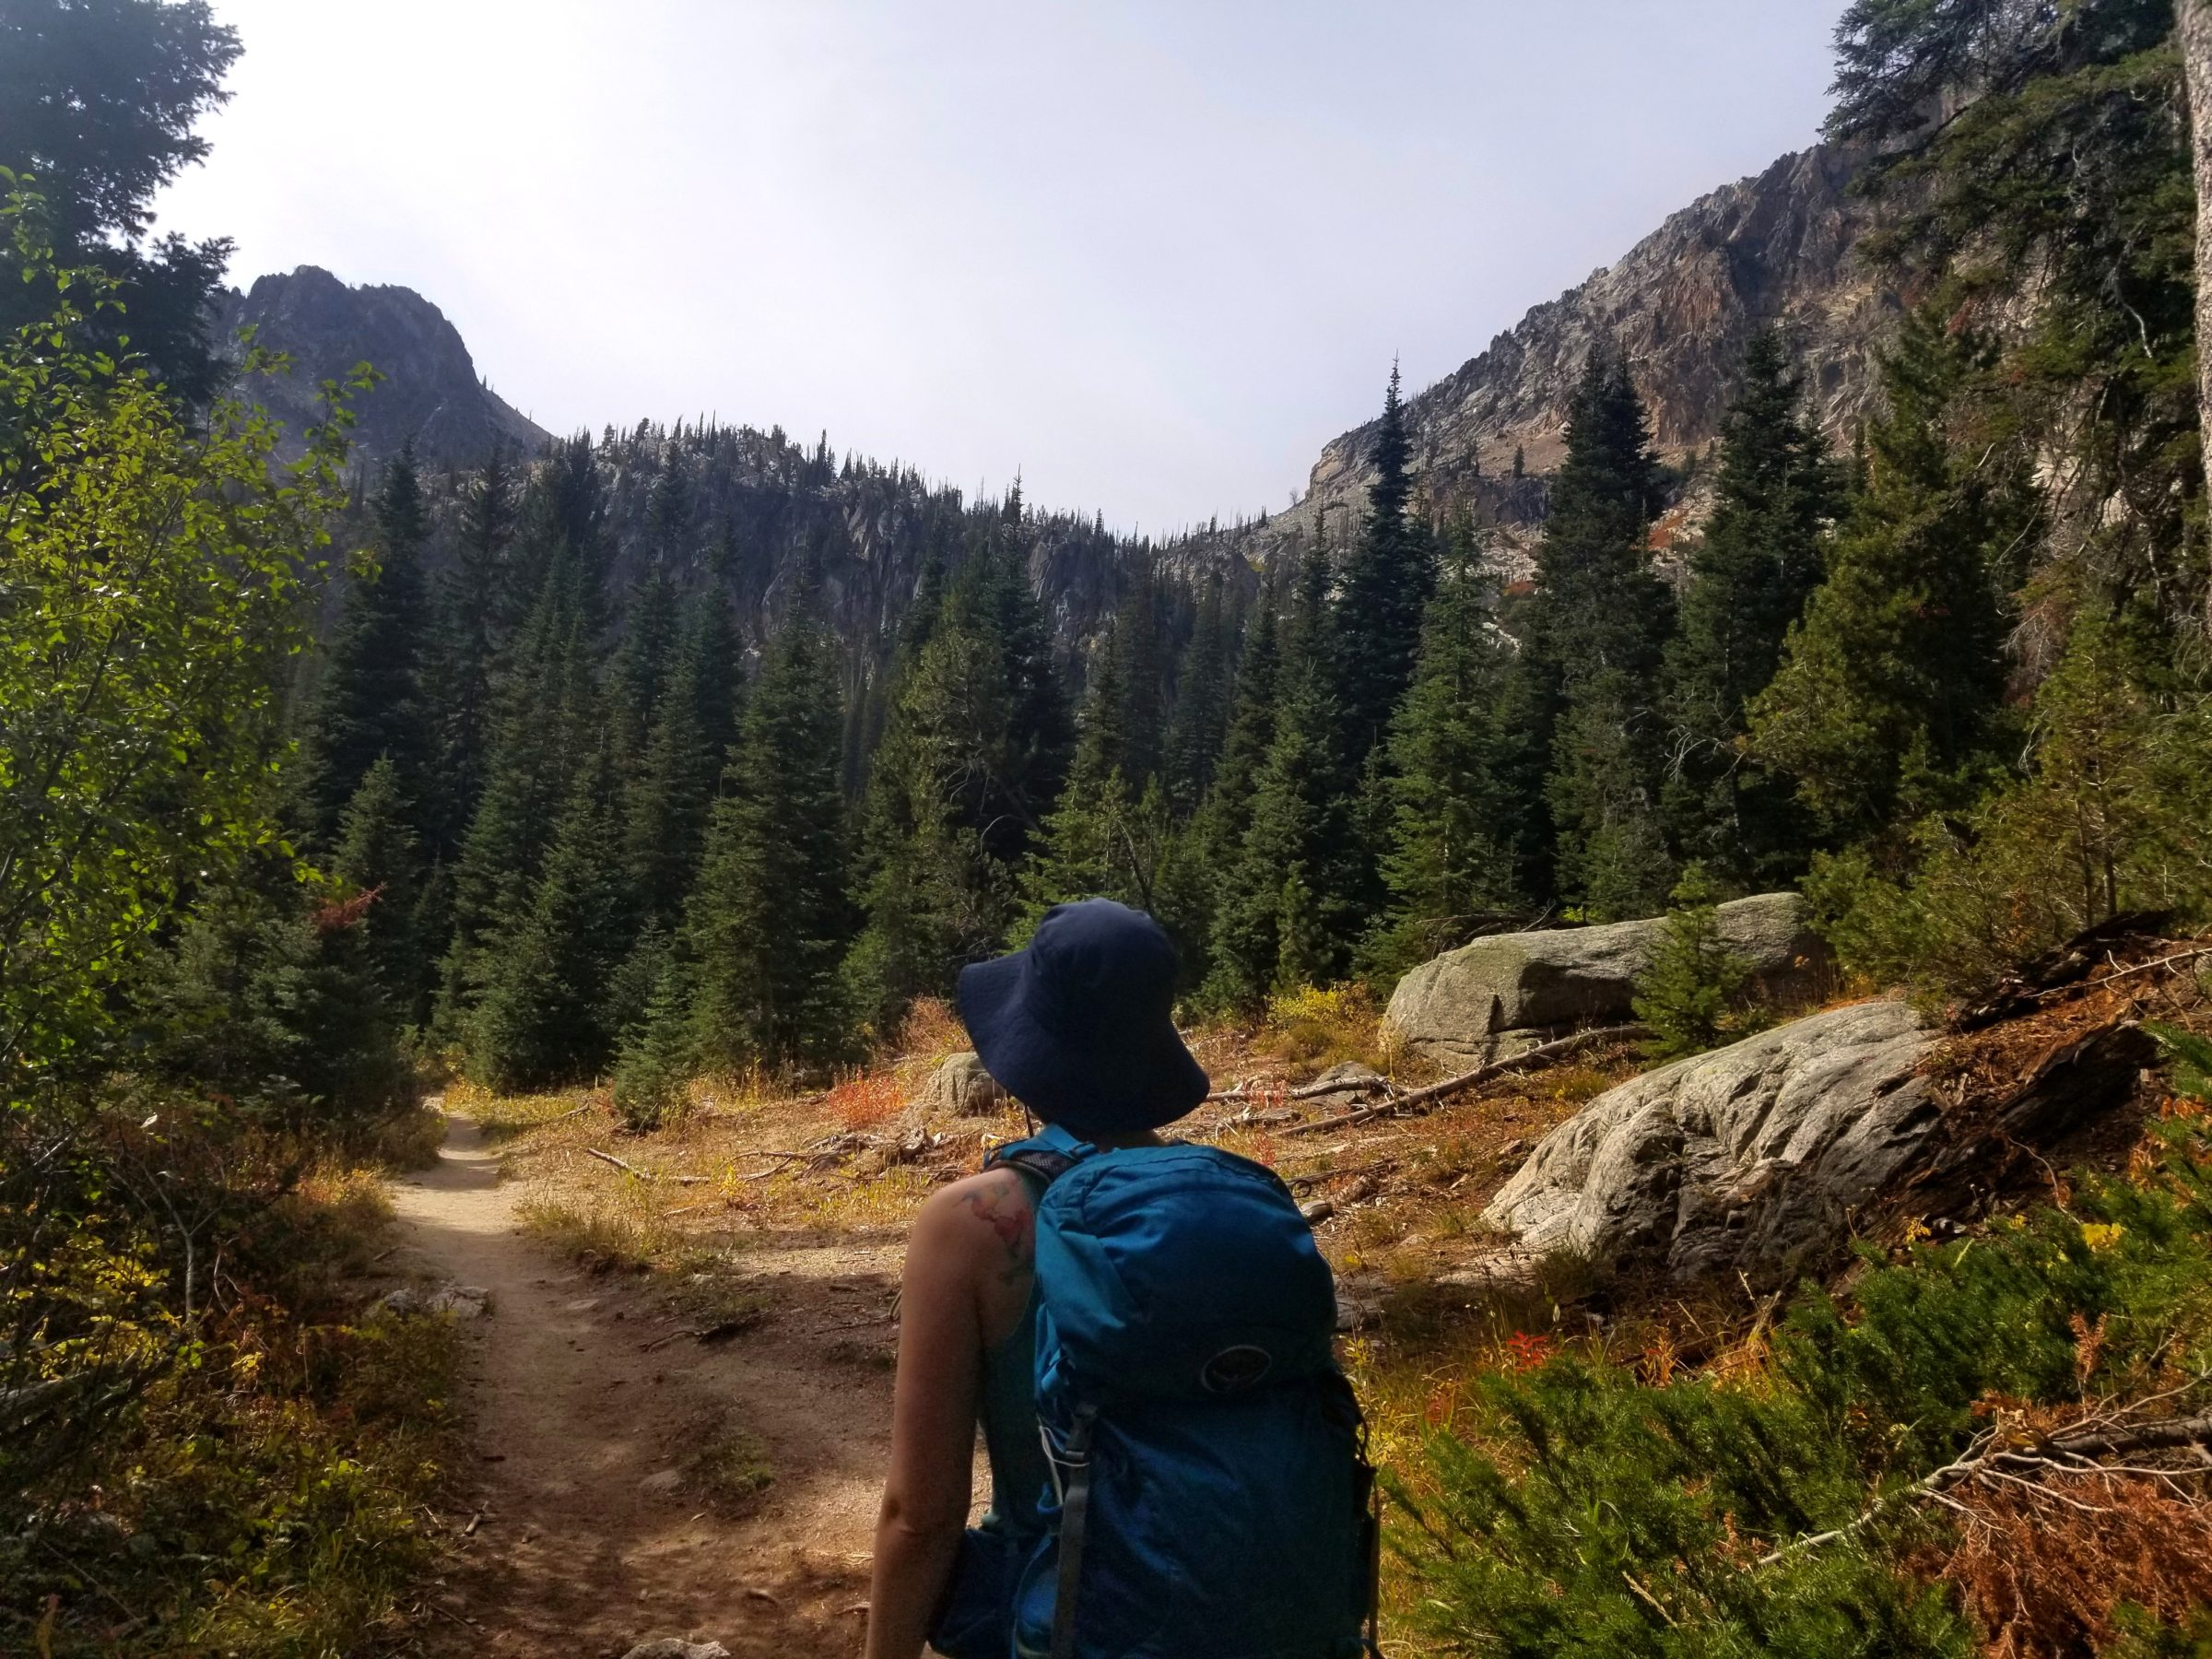 Sarah hiking through Fall colors in the Sawtooth Mountains